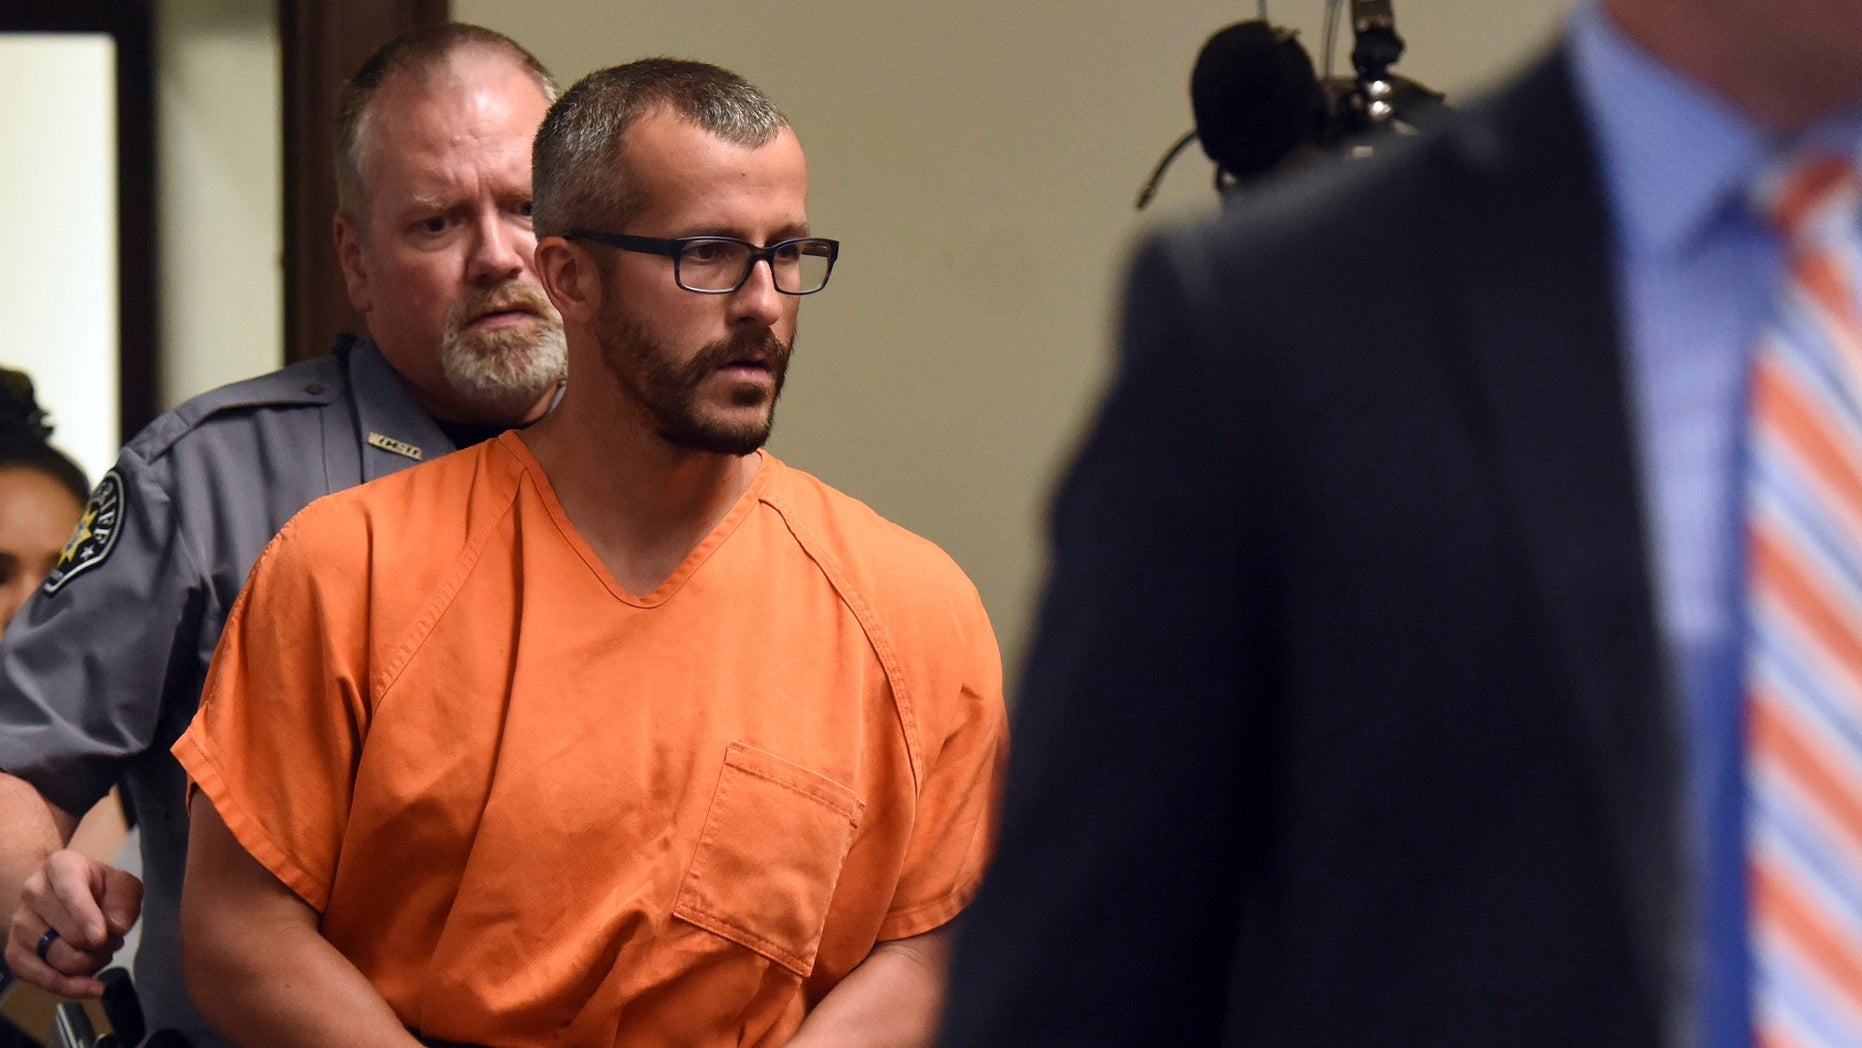 Chris Watts' Mistress Reveals Details of Their Love Affair